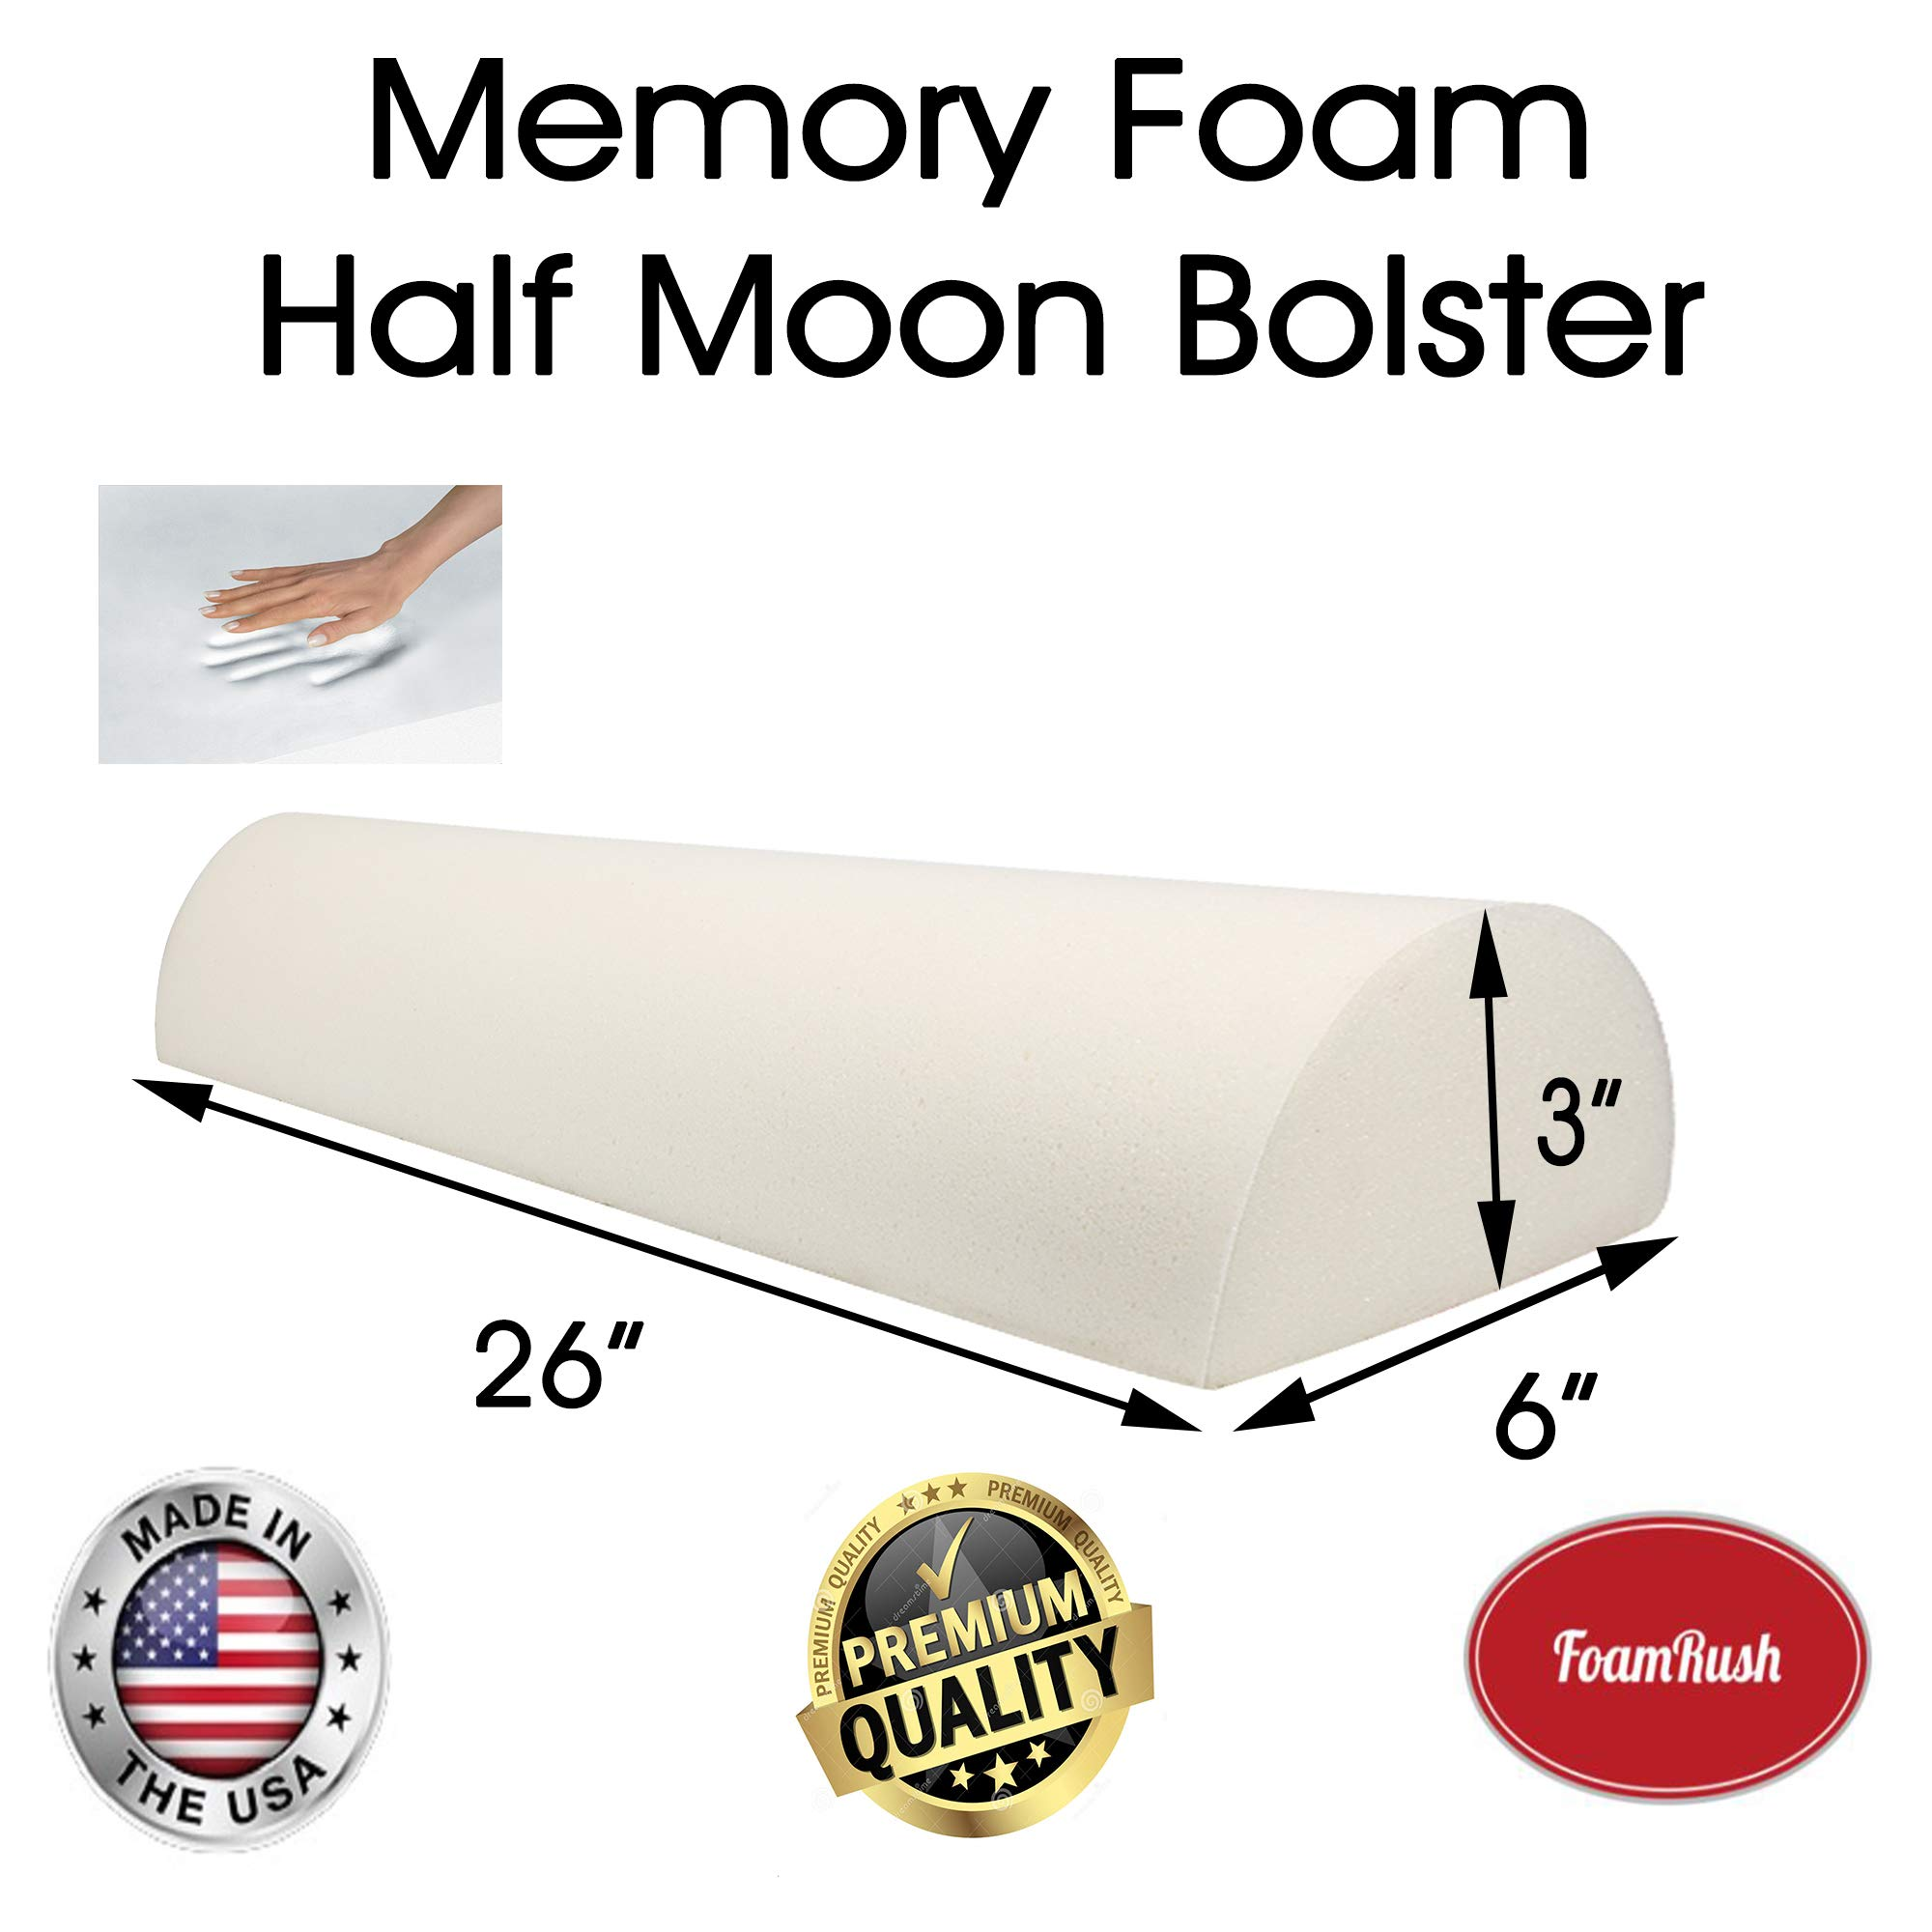 FoamRush 3'' H x 6'' D x26'' L Premium Quality Memory Foam Half Moon, Semi-Roll Bolster Cushion Replacement (Pressure Relief for Side, Back, Stomach Sleepers to Reduce Joint Stress) Made in USA by FoamRush